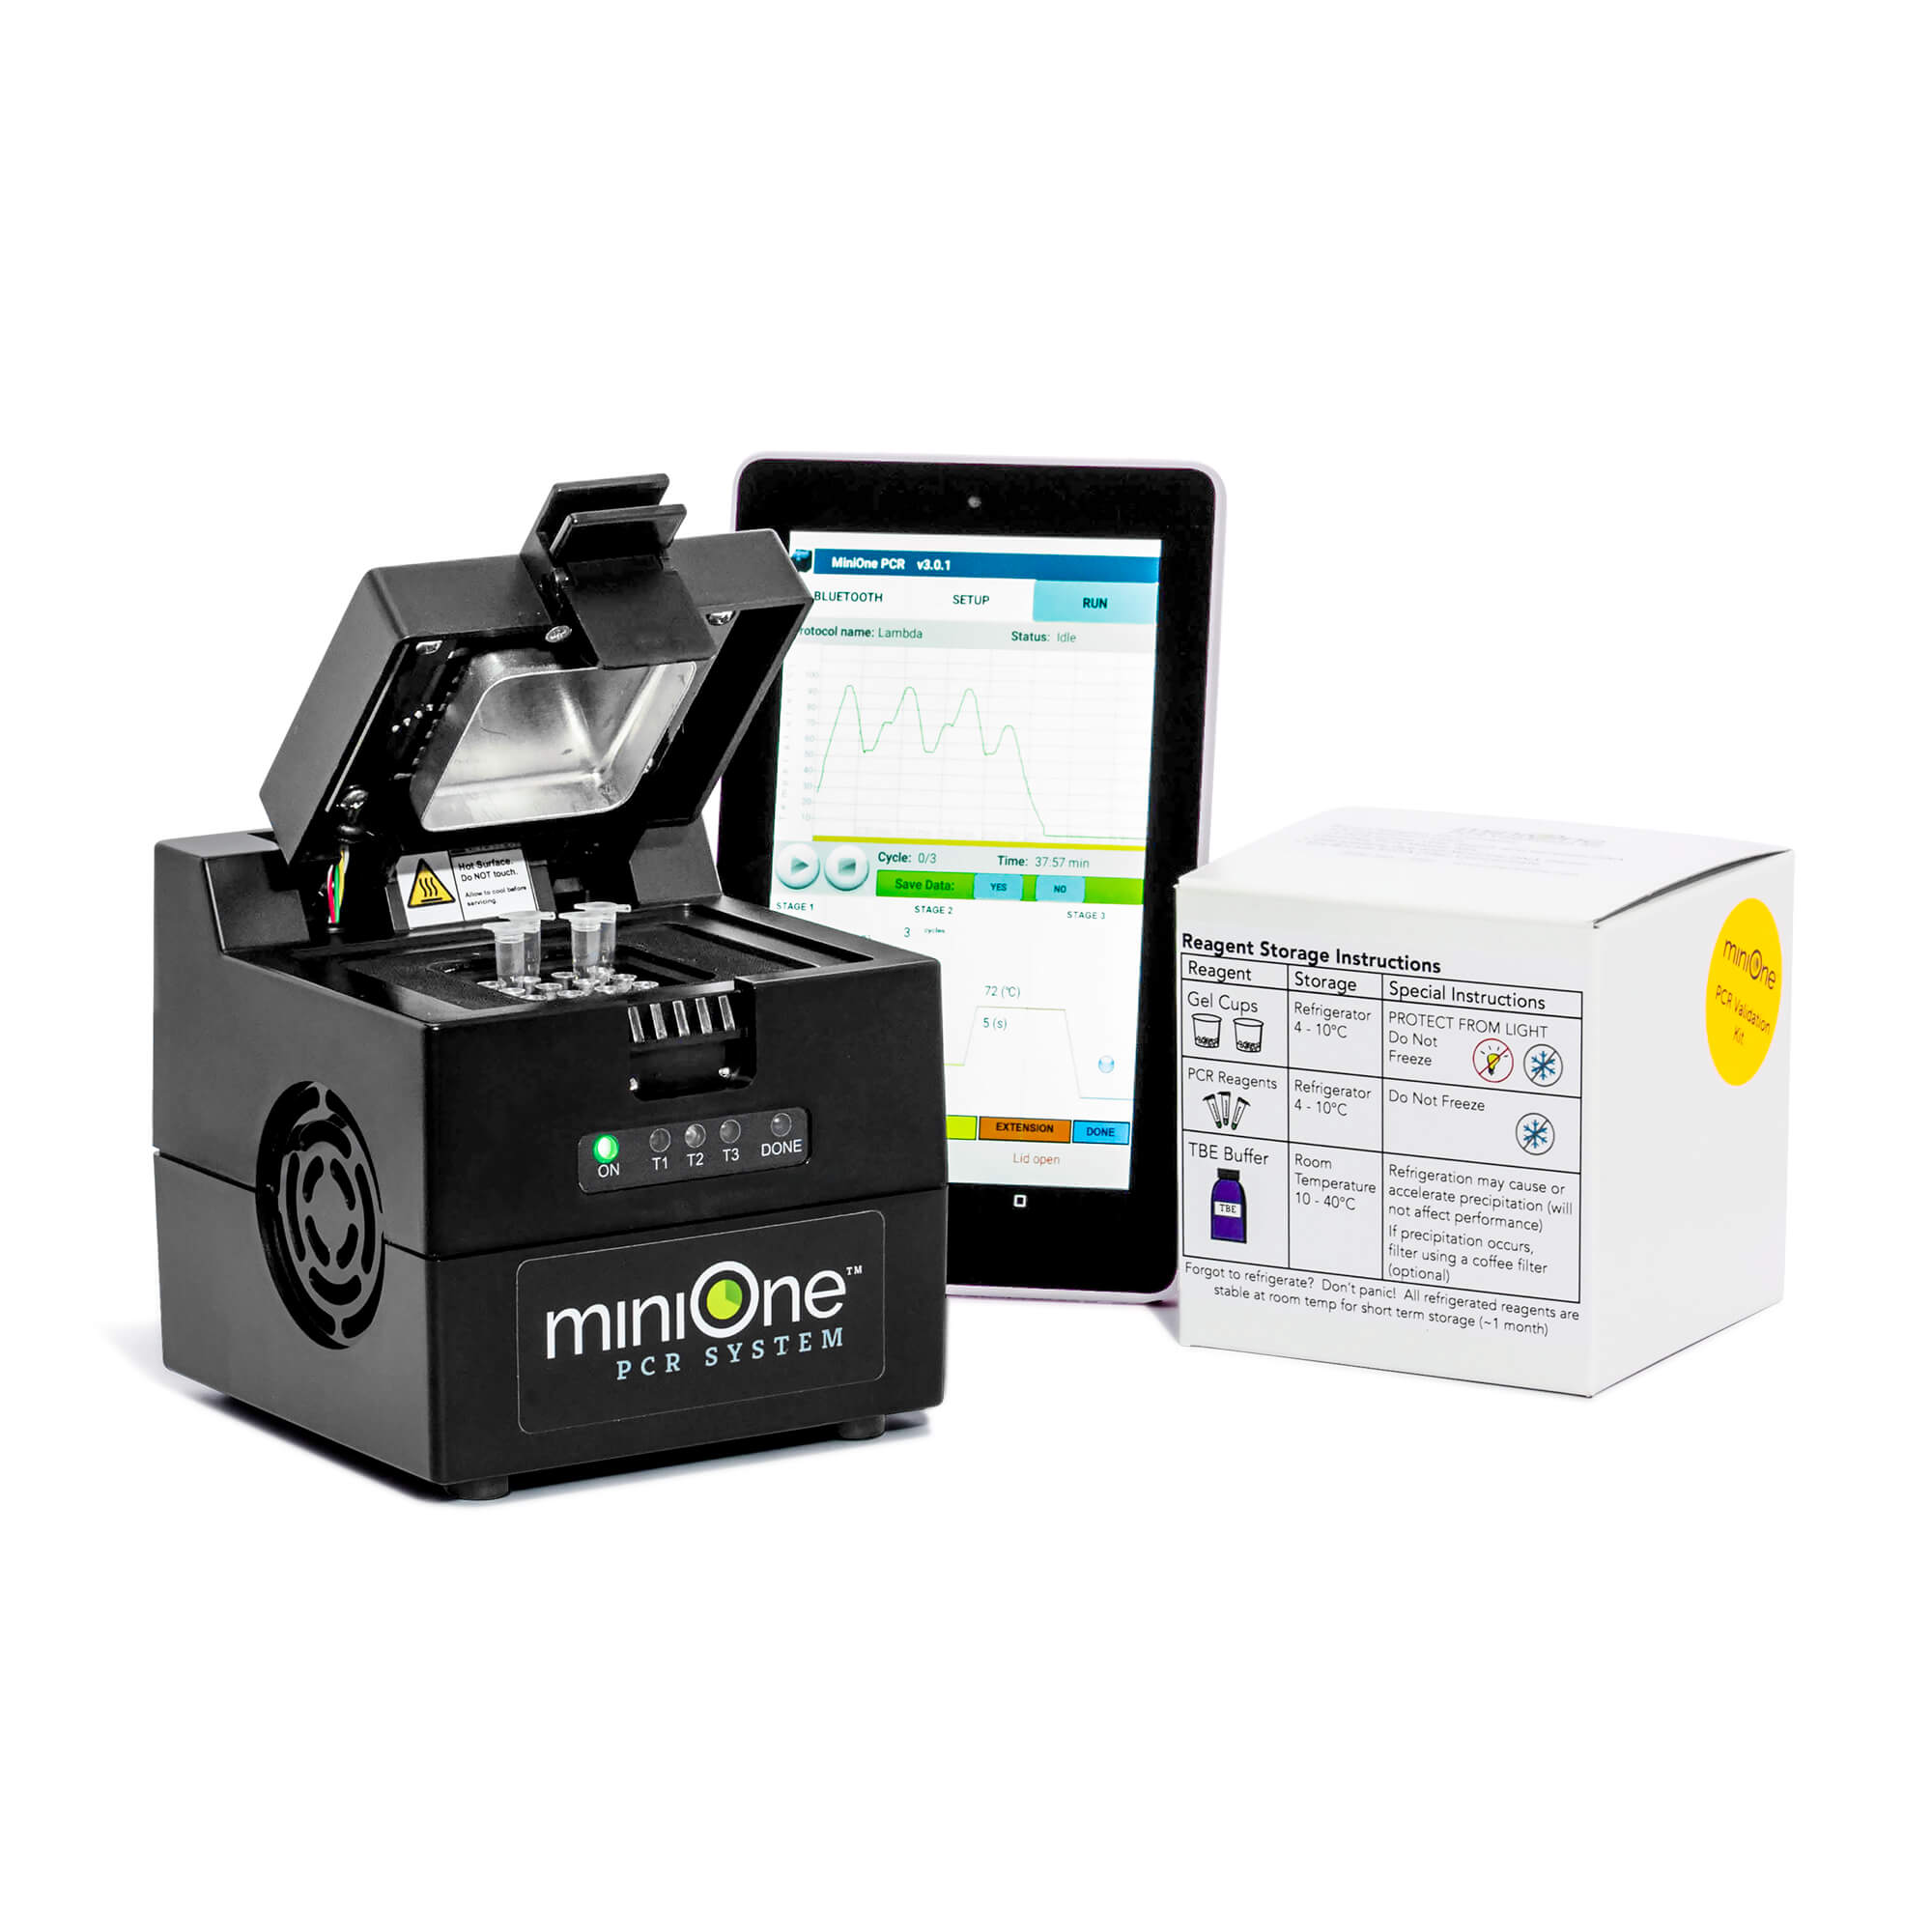 MiniOne® PCR System with Validation Kit